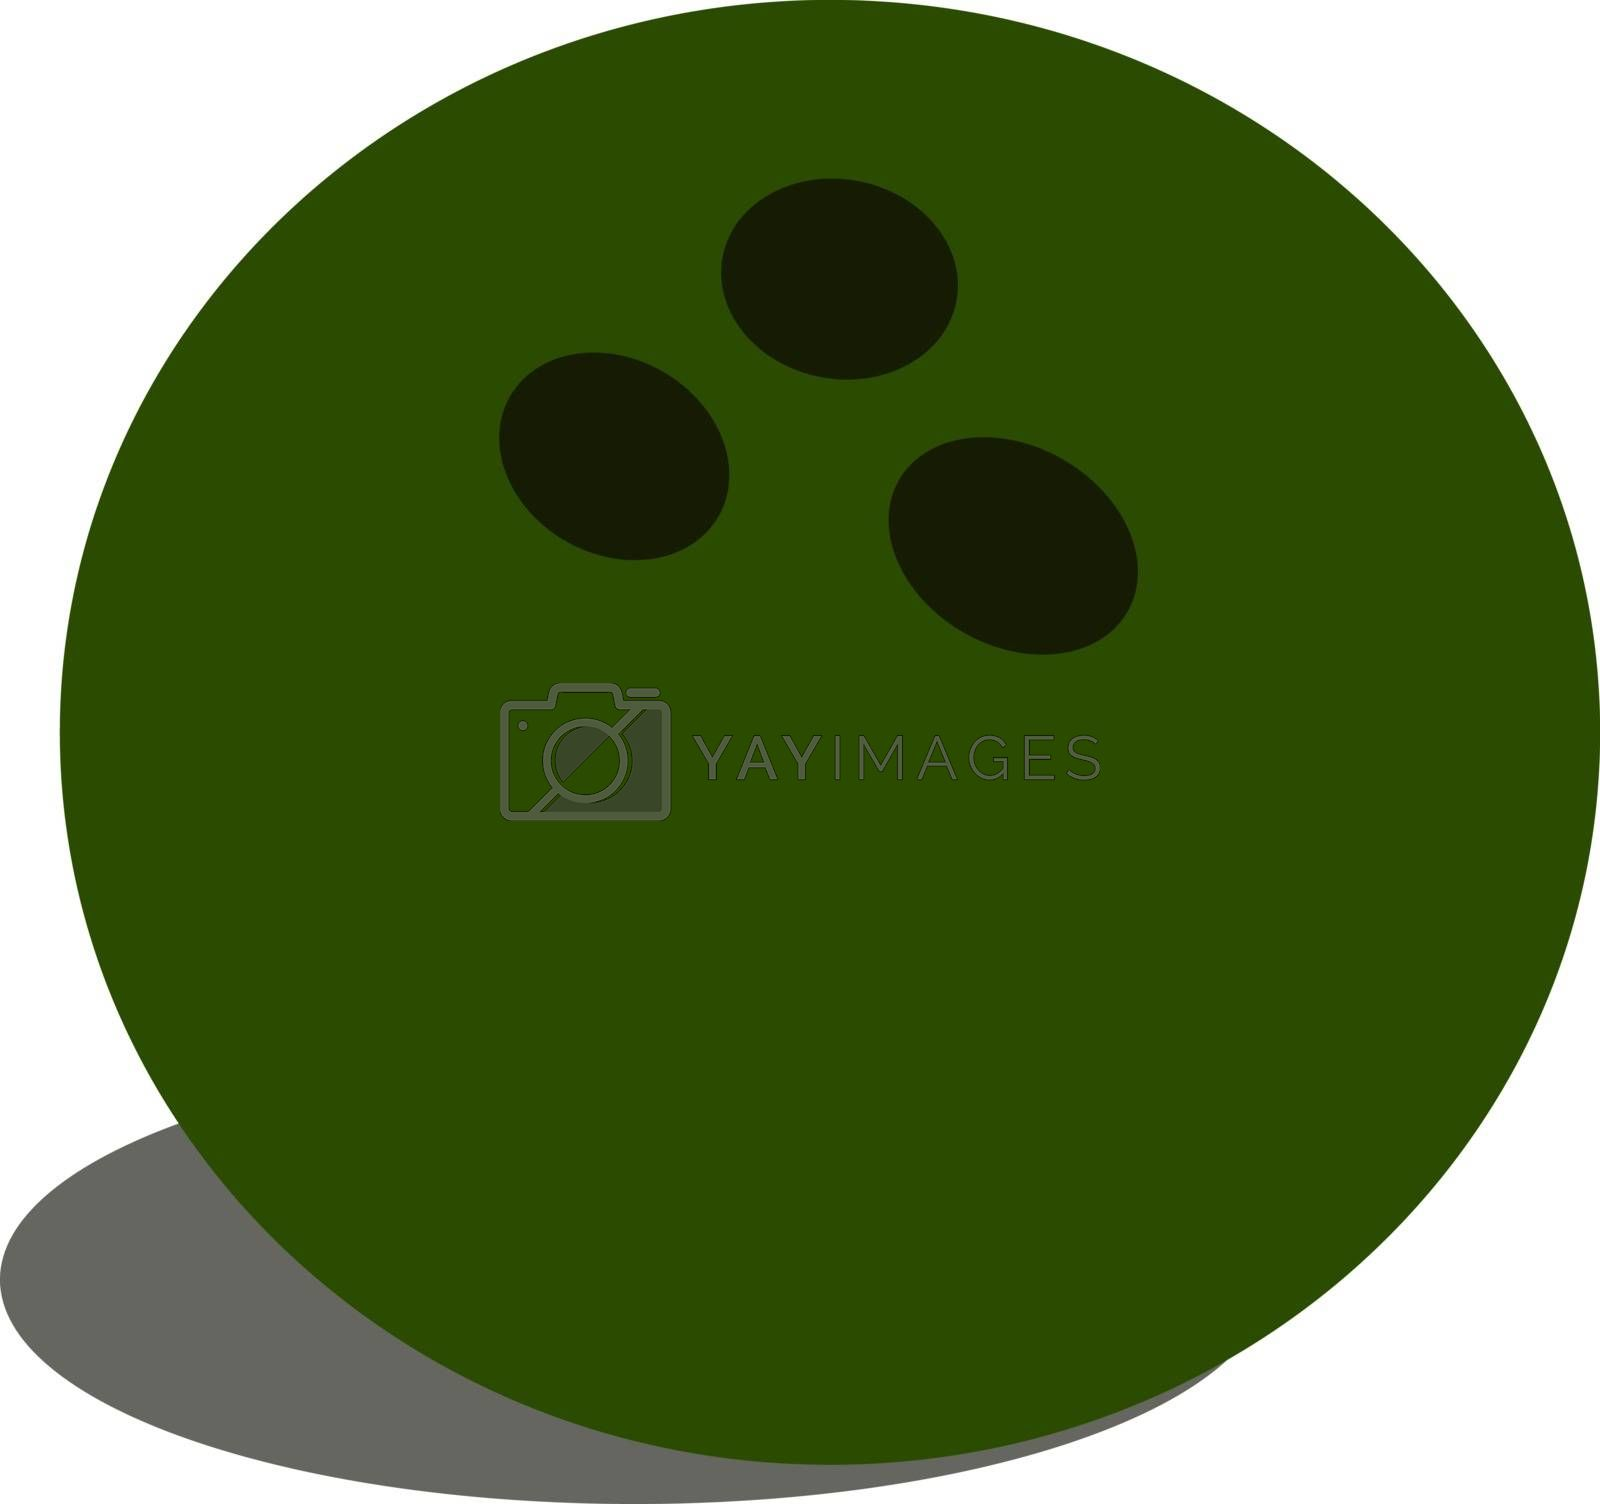 Bowling ball, illustration, vector on white background.